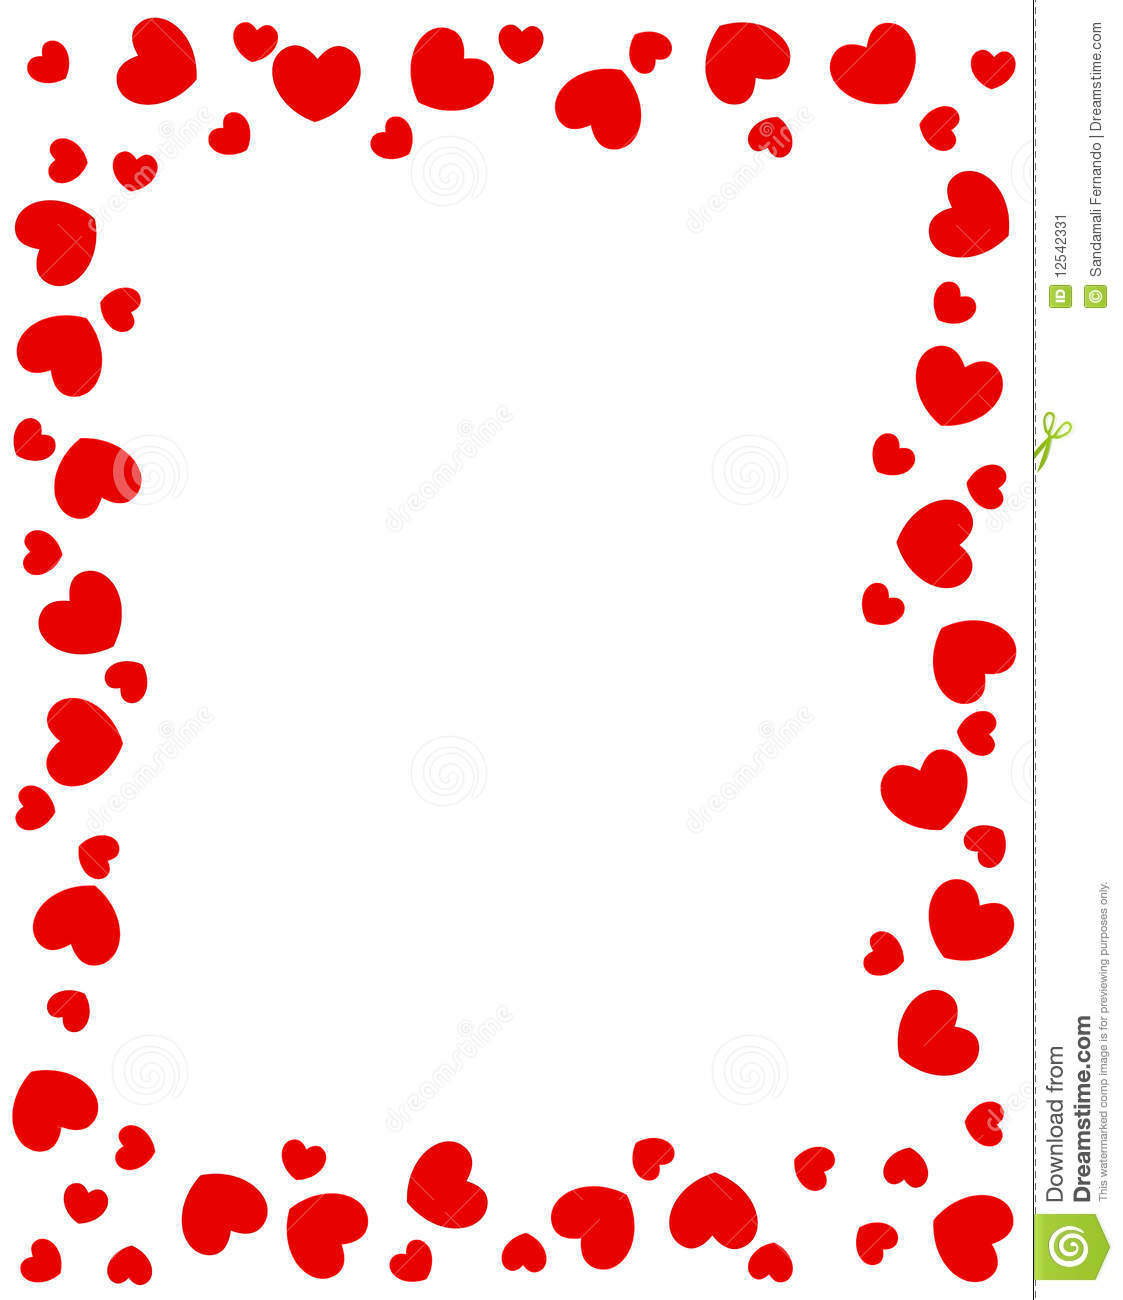 Red Hearts Border Stock Image